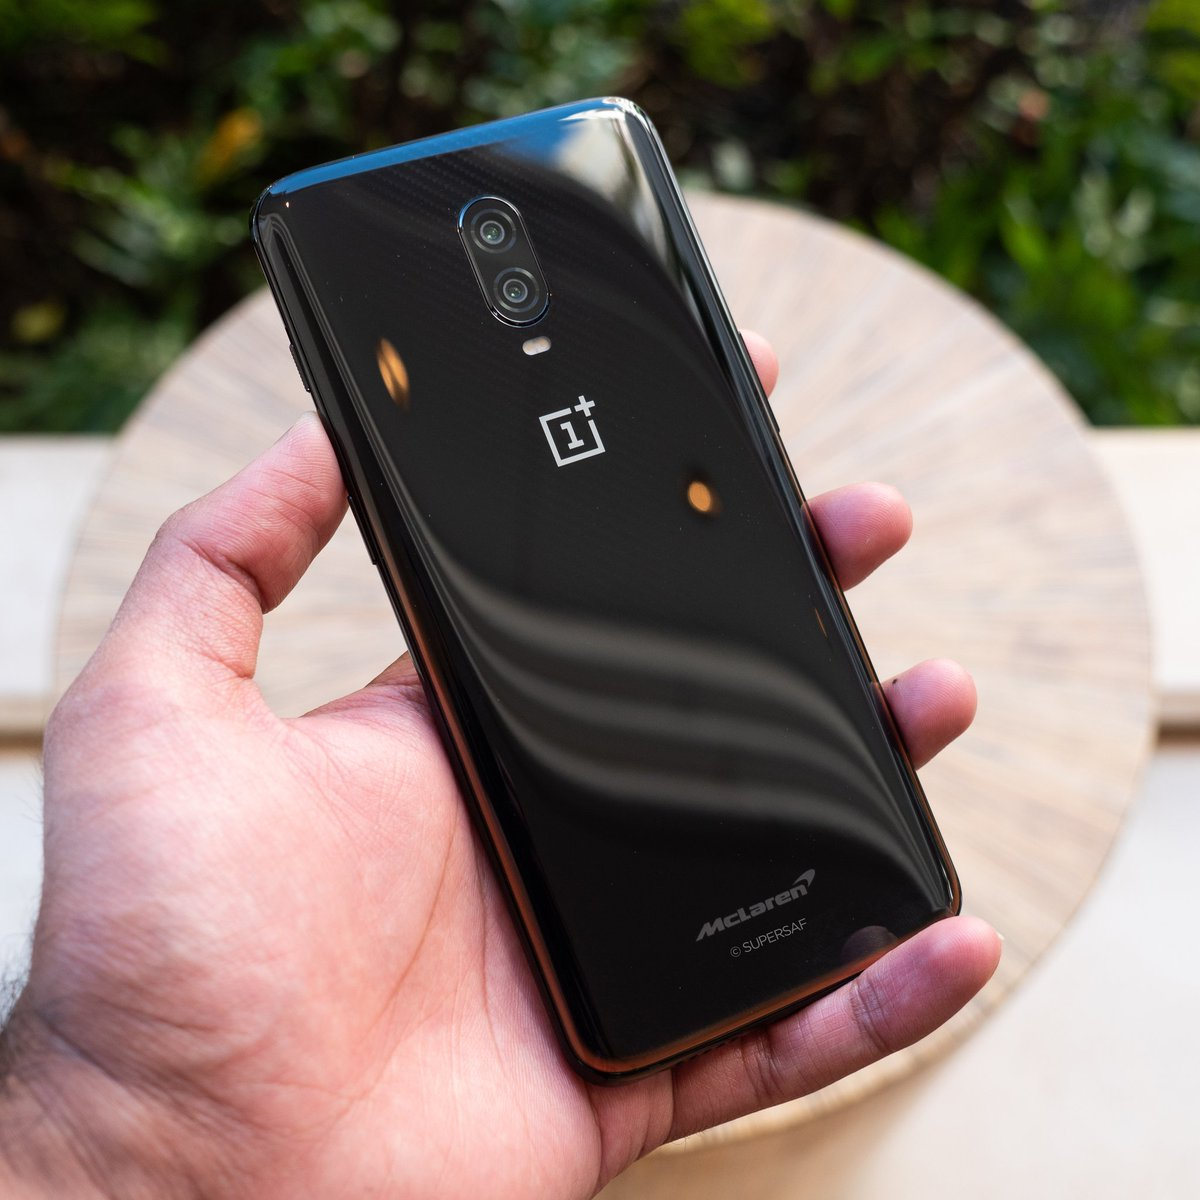 "#OnePlus6T McLaren Edition  McLaren Inspired Design  6.41"" FHD+ AMOLED In-Display Fingerprint @Qualcomm Snapdragon 845 10GB RAM/256GB 16+20MP f1.7 Rear 16MP f2.0 Front Warp Charge 30 (50% in 20 minutes) £649 from Dec 13  Unboxing ►►► https://youtu.be/J9i89ZsOhAM  #SalutetoSpeed"